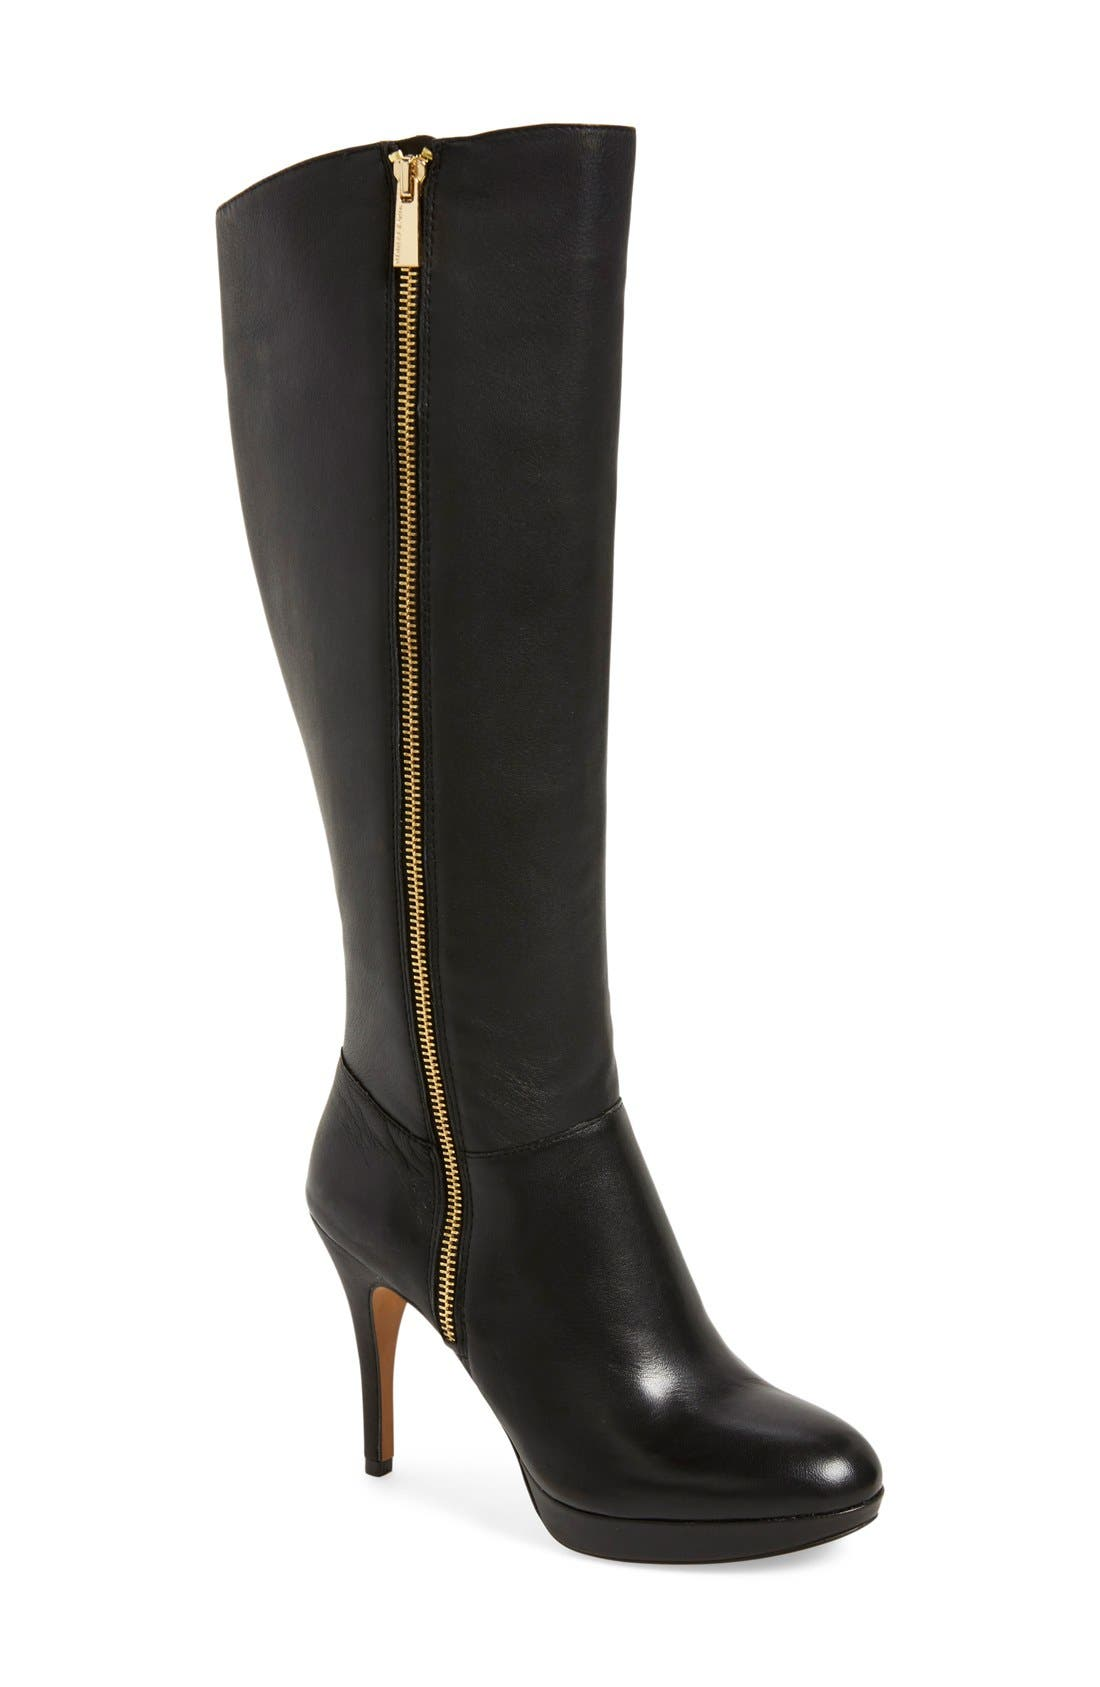 VINCE CAMUTO,                             'Emilian' Tall Boot,                             Main thumbnail 1, color,                             001